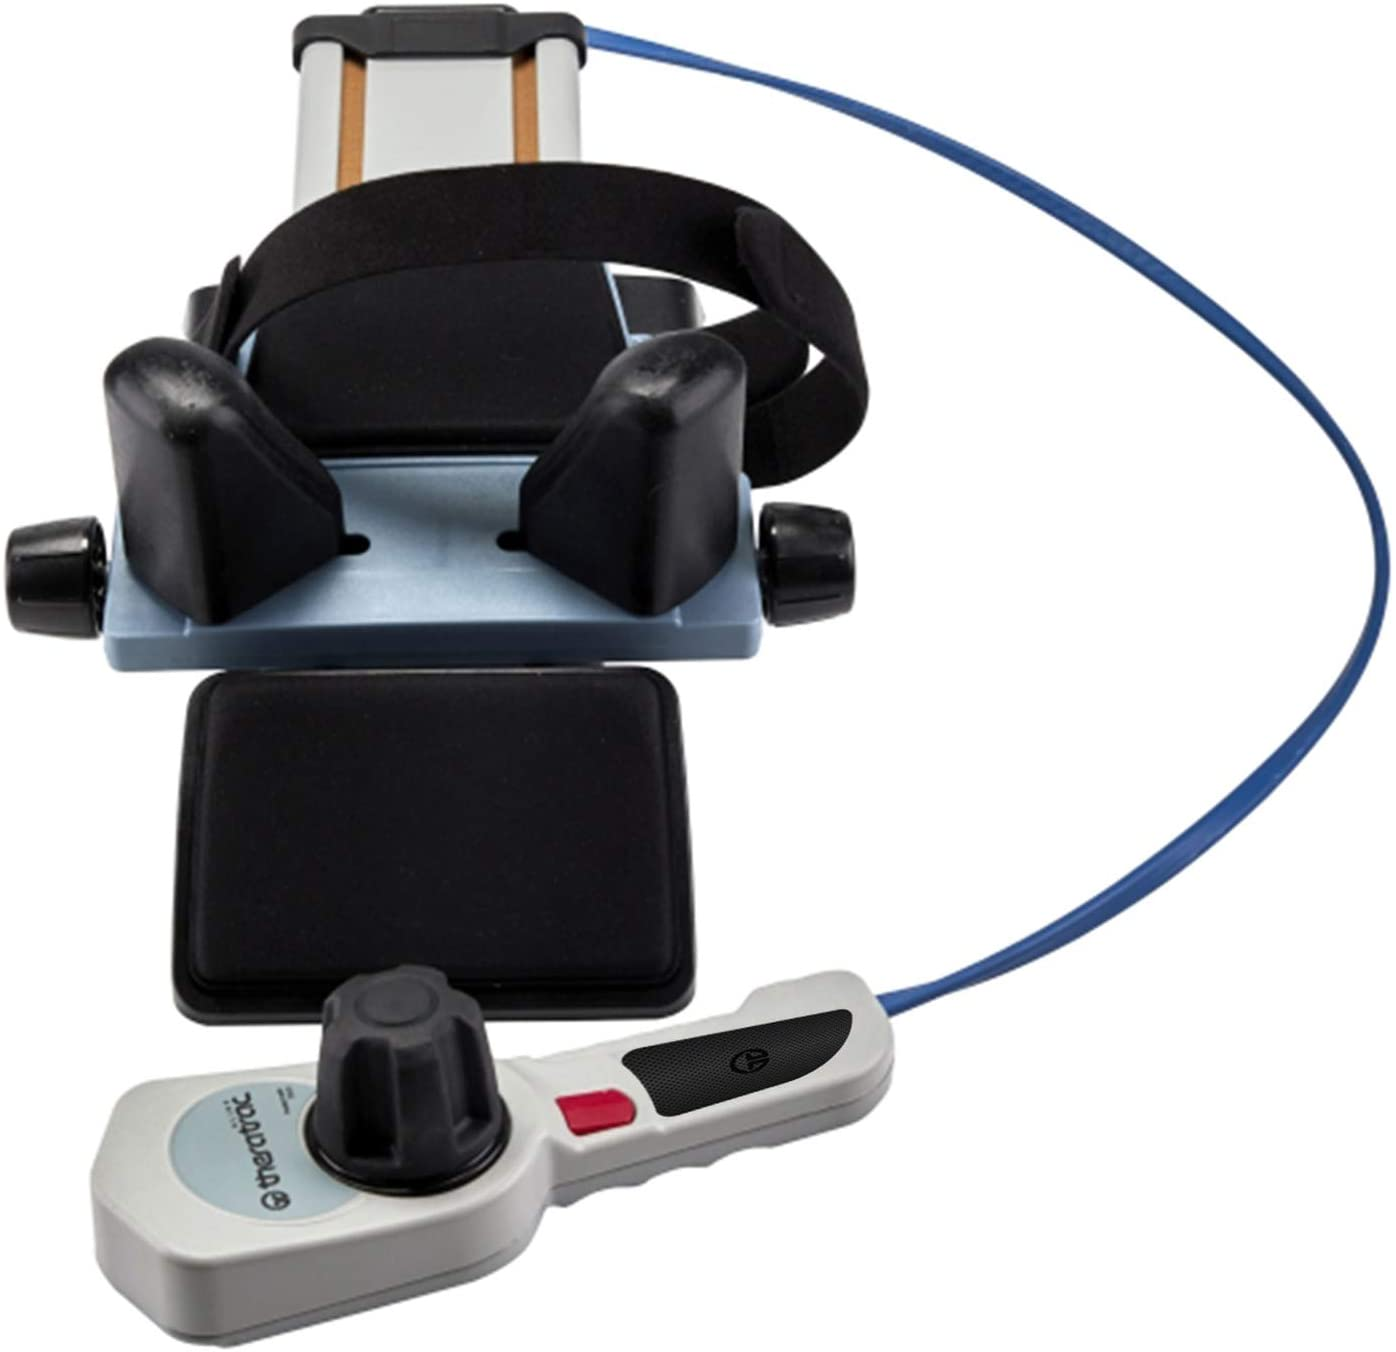 Neck Traction with Ratchet Tight Technology by Theratrac Glide - Cervical Traction - Stretch and Relieve Pain, Cervicalgia, Degeneration of disc, Spondylosis and Spine Alignment